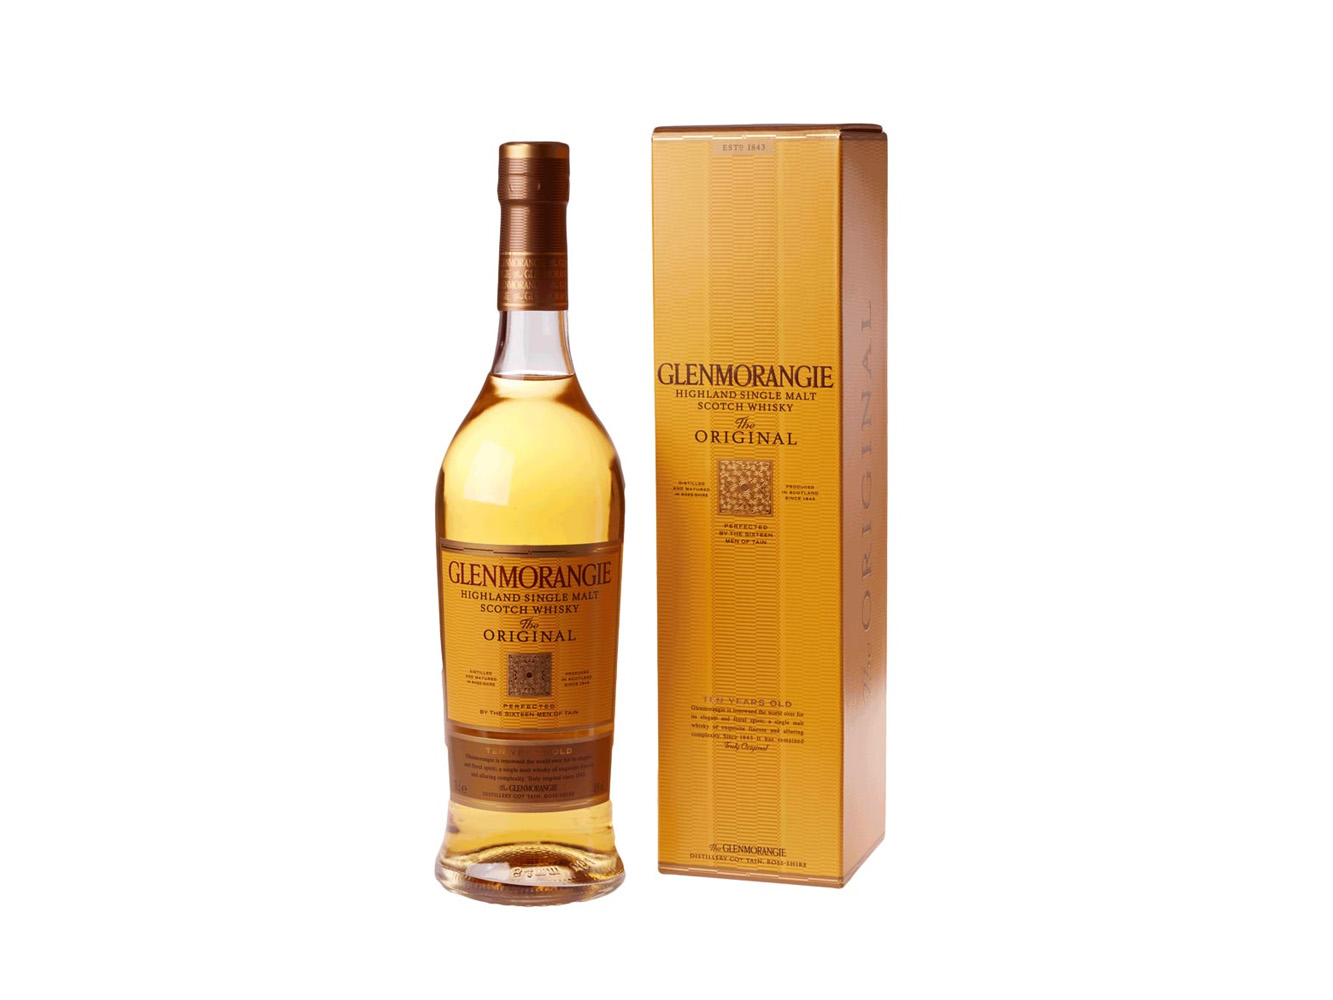 Glenmorangie - MacDonald and Muir went on to acquire the Glenmorangie whisky company in 1918 (adopting the Glenmorangie name in the process), and their offices are still located in Edinburgh today, while the company is now owned by the French luxury goods giant, LVMH.